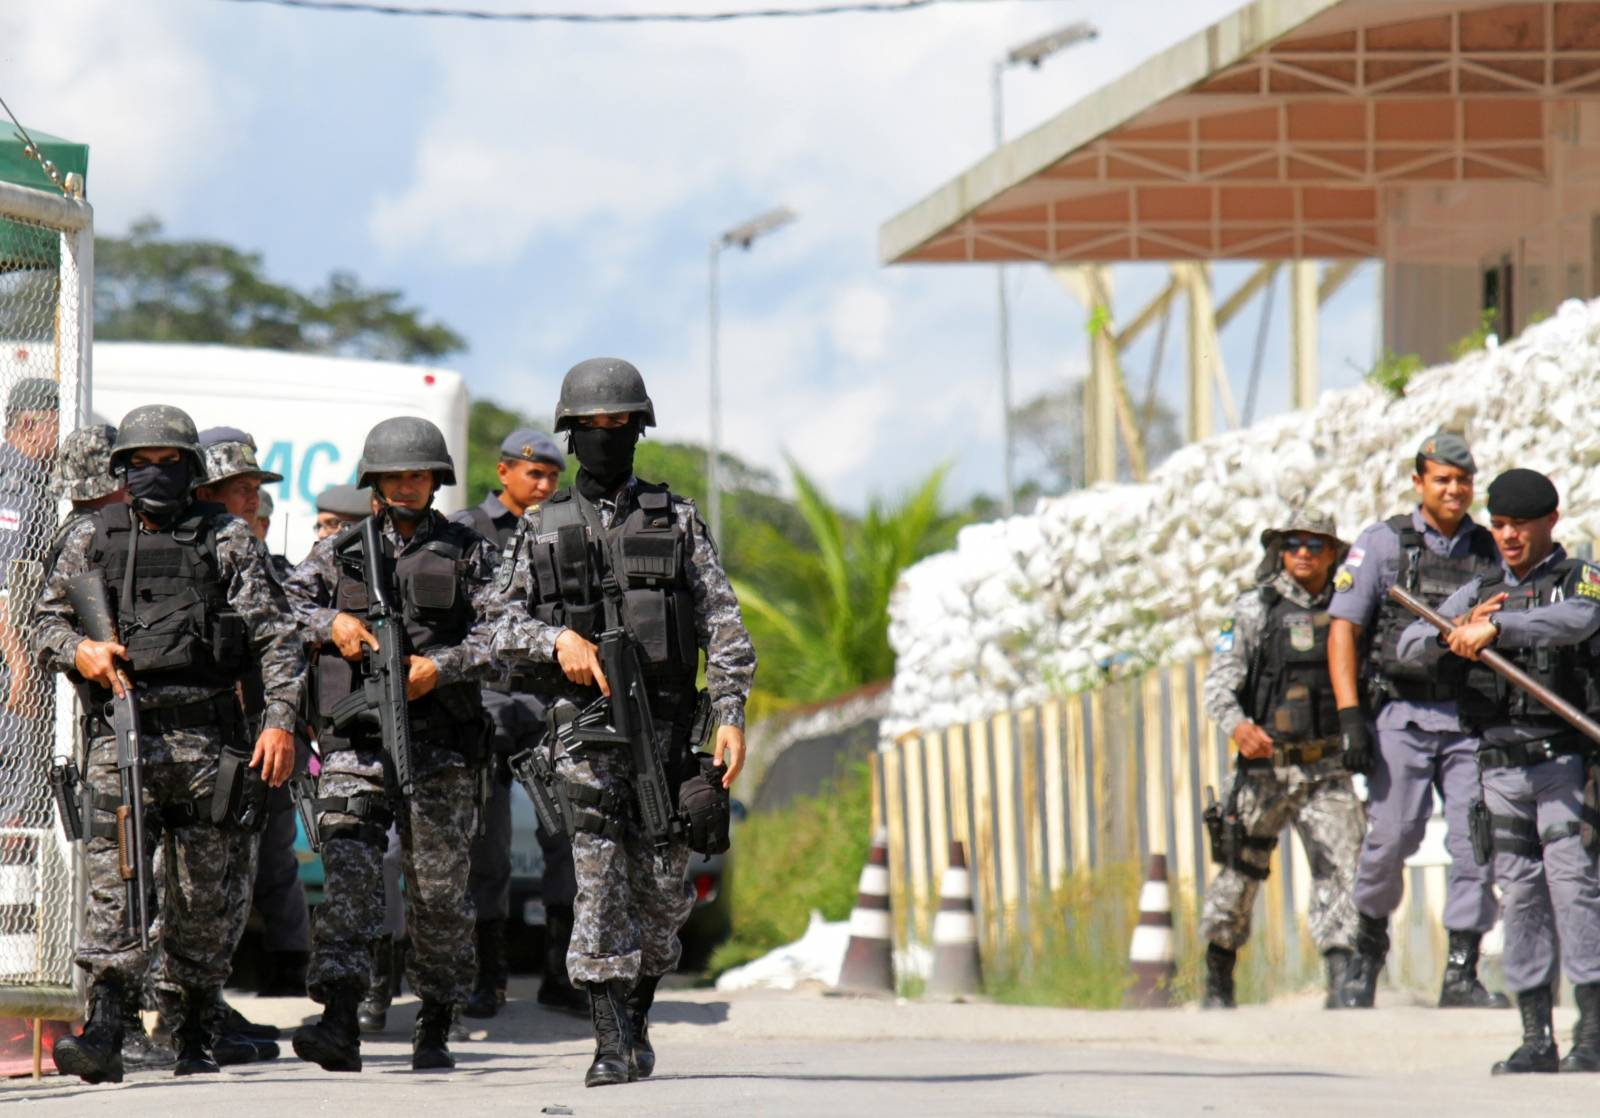 Policemen are seen during a riot in a prison in Brazilian state of Amazonas in Manaus